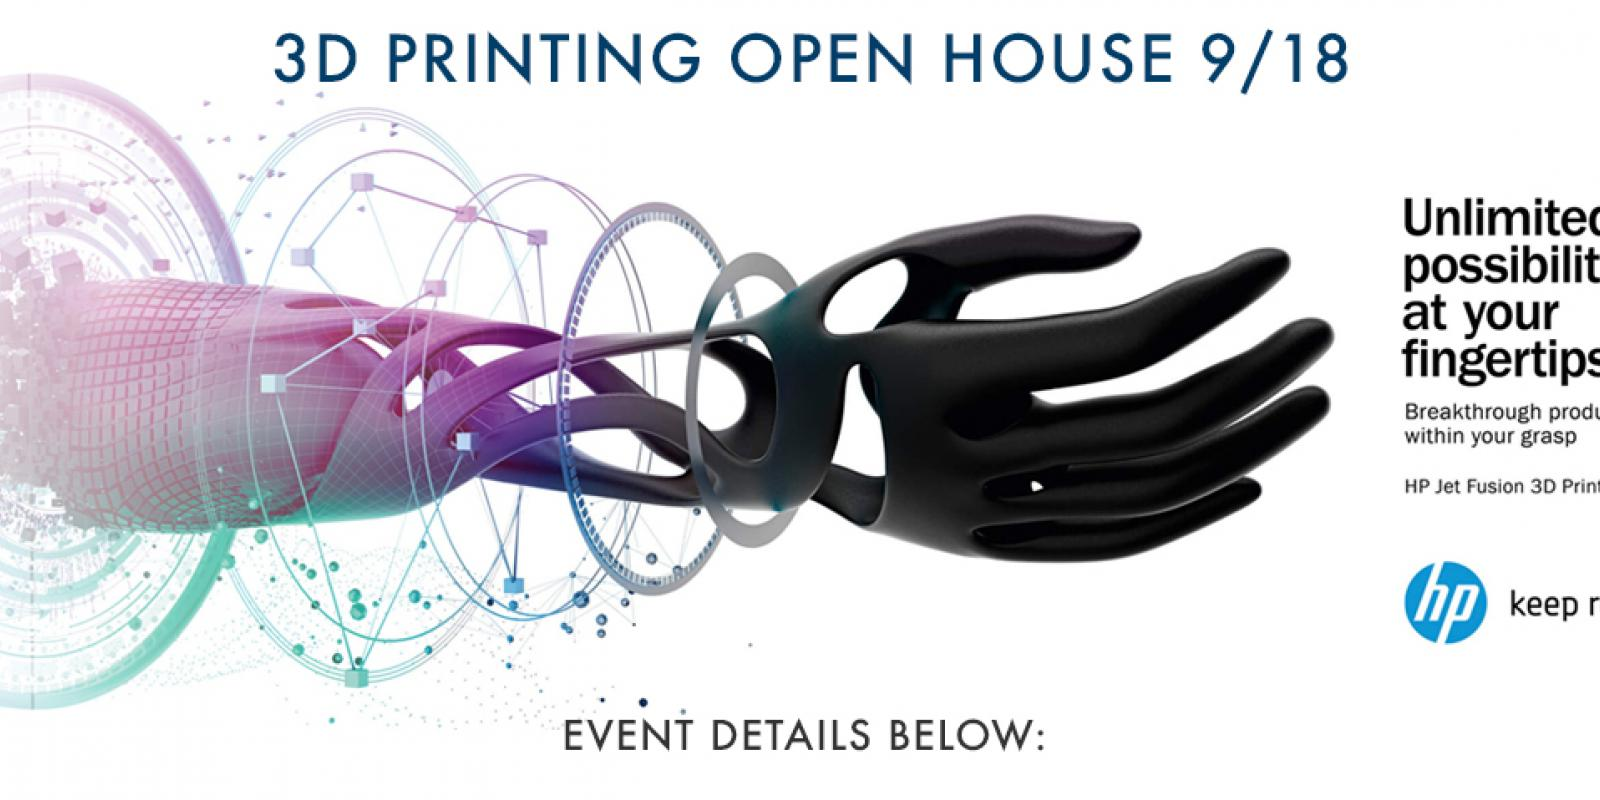 Unlimited possibilities at your fingertips. Breakthrough productivity is within your grasp. HP Jet Fusion 3D Printing